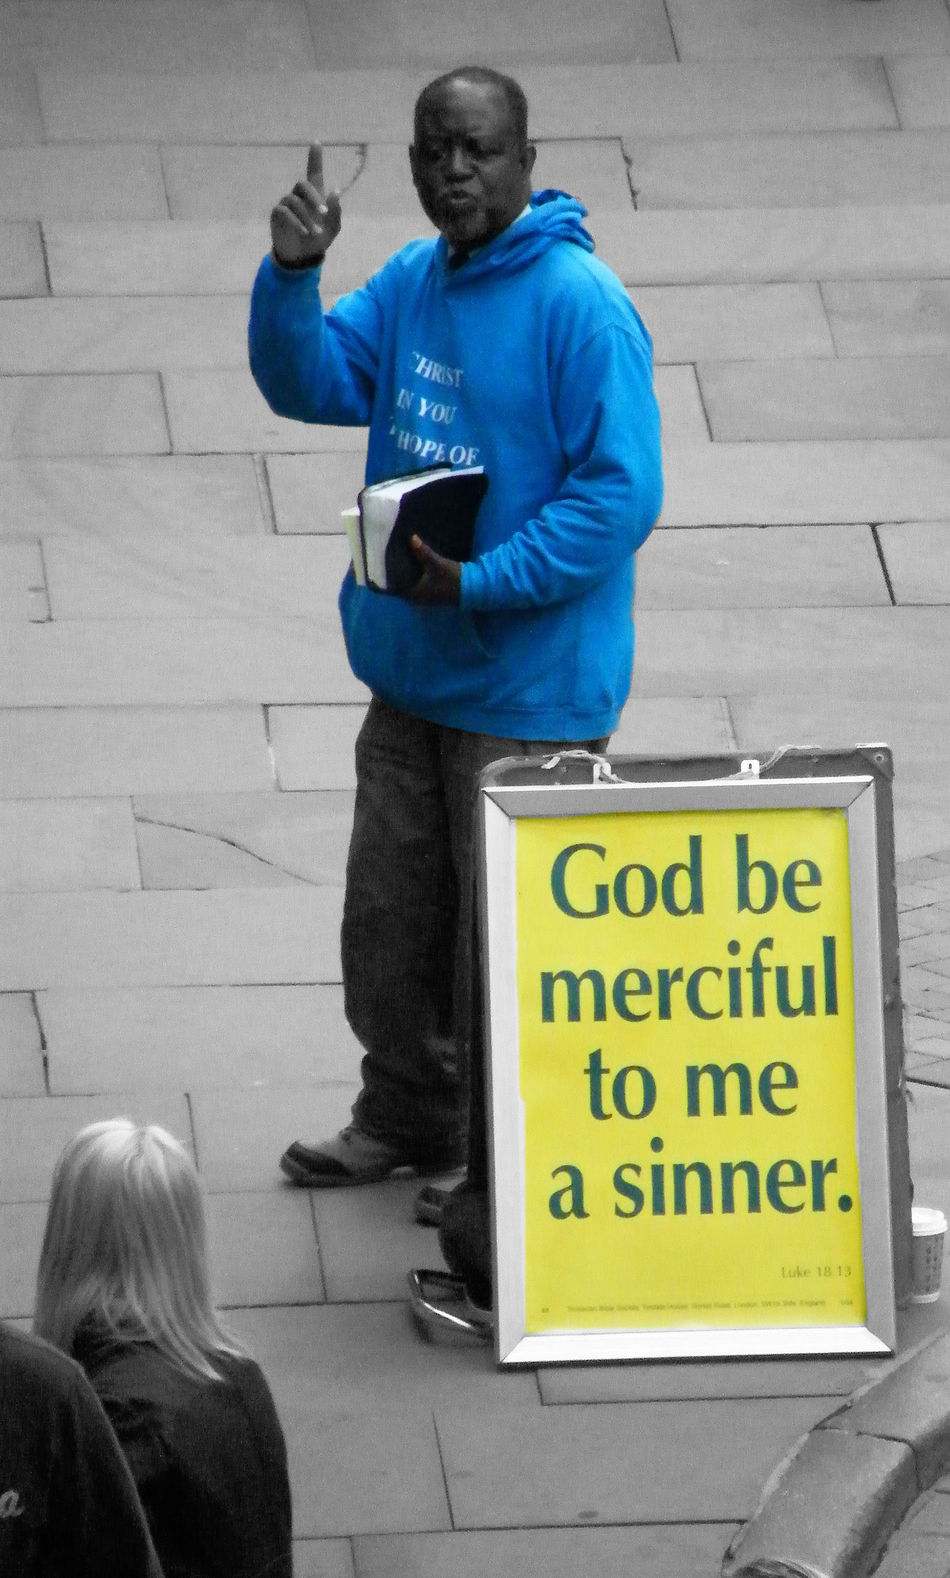 Blue Blue Hoodie Man Missionary On The Street Religion Street Preacher Street Scene Up Close Street Photography Being Human The Human Condition Faith Hopeful